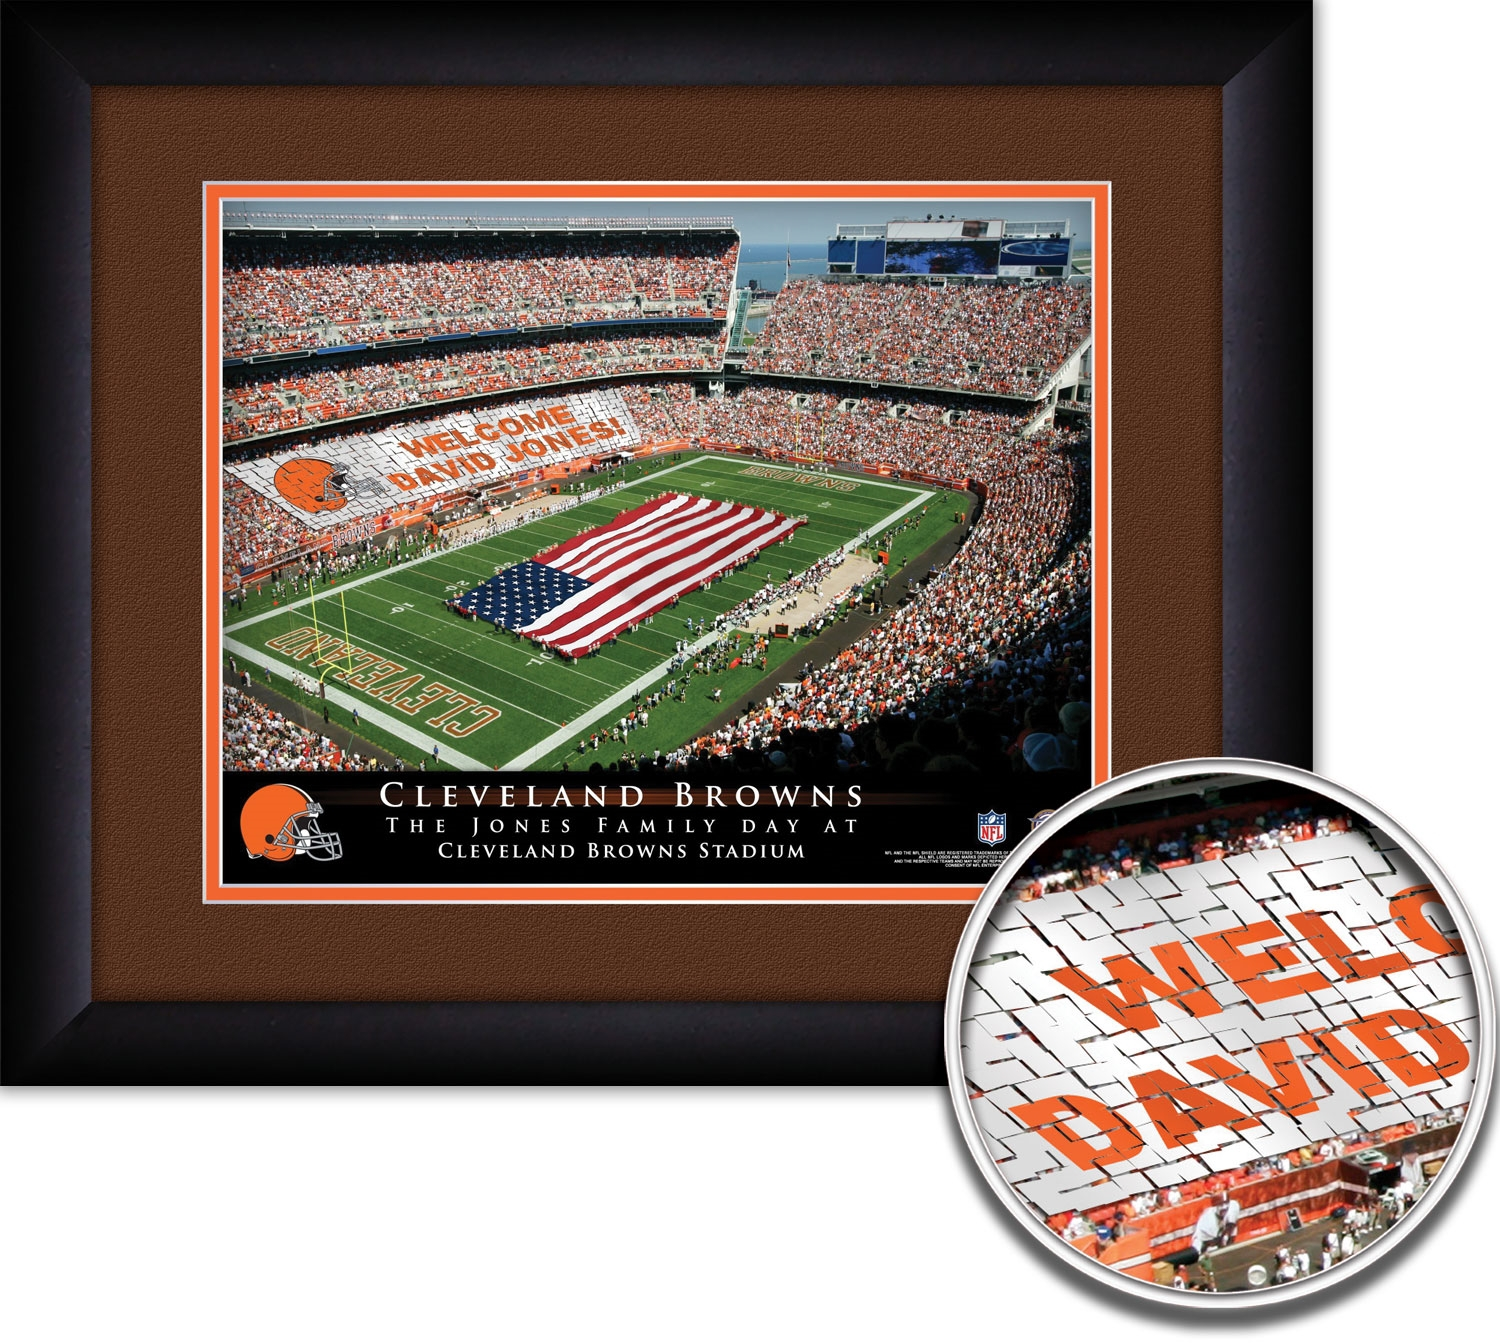 Personalized Cleveland Browns Stadium Quot Your Day At Quot 15